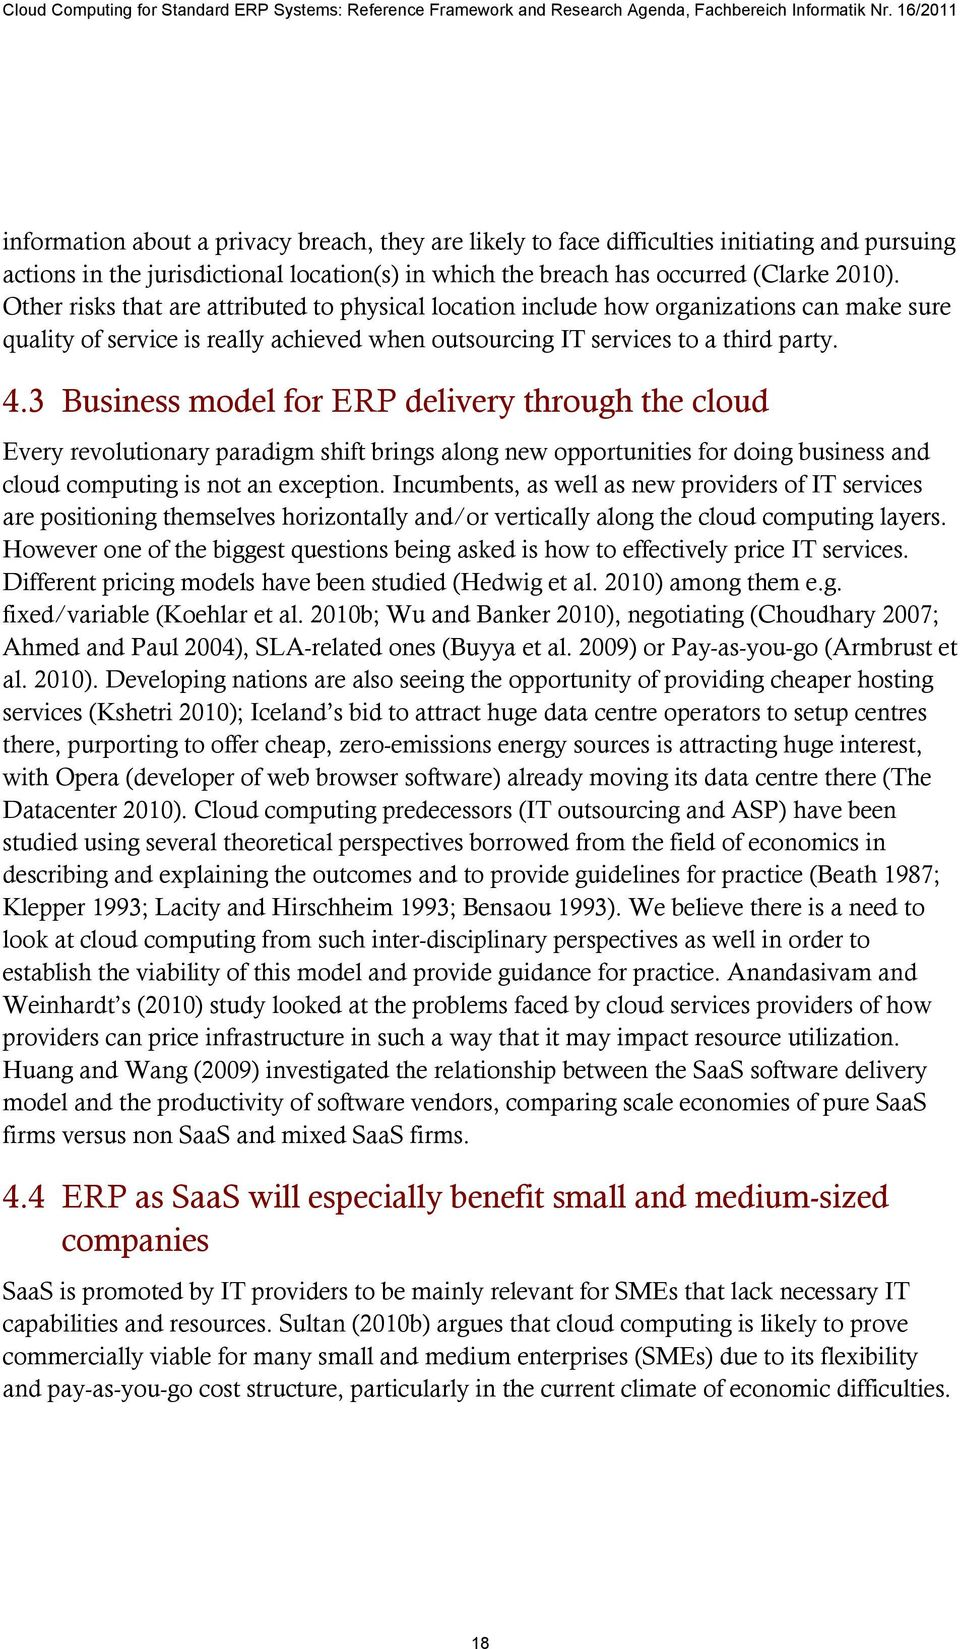 3 Business model for ERP delivery through the cloud Every revolutionary paradigm shift brings along new opportunities for doing business and cloud computing is not an exception.